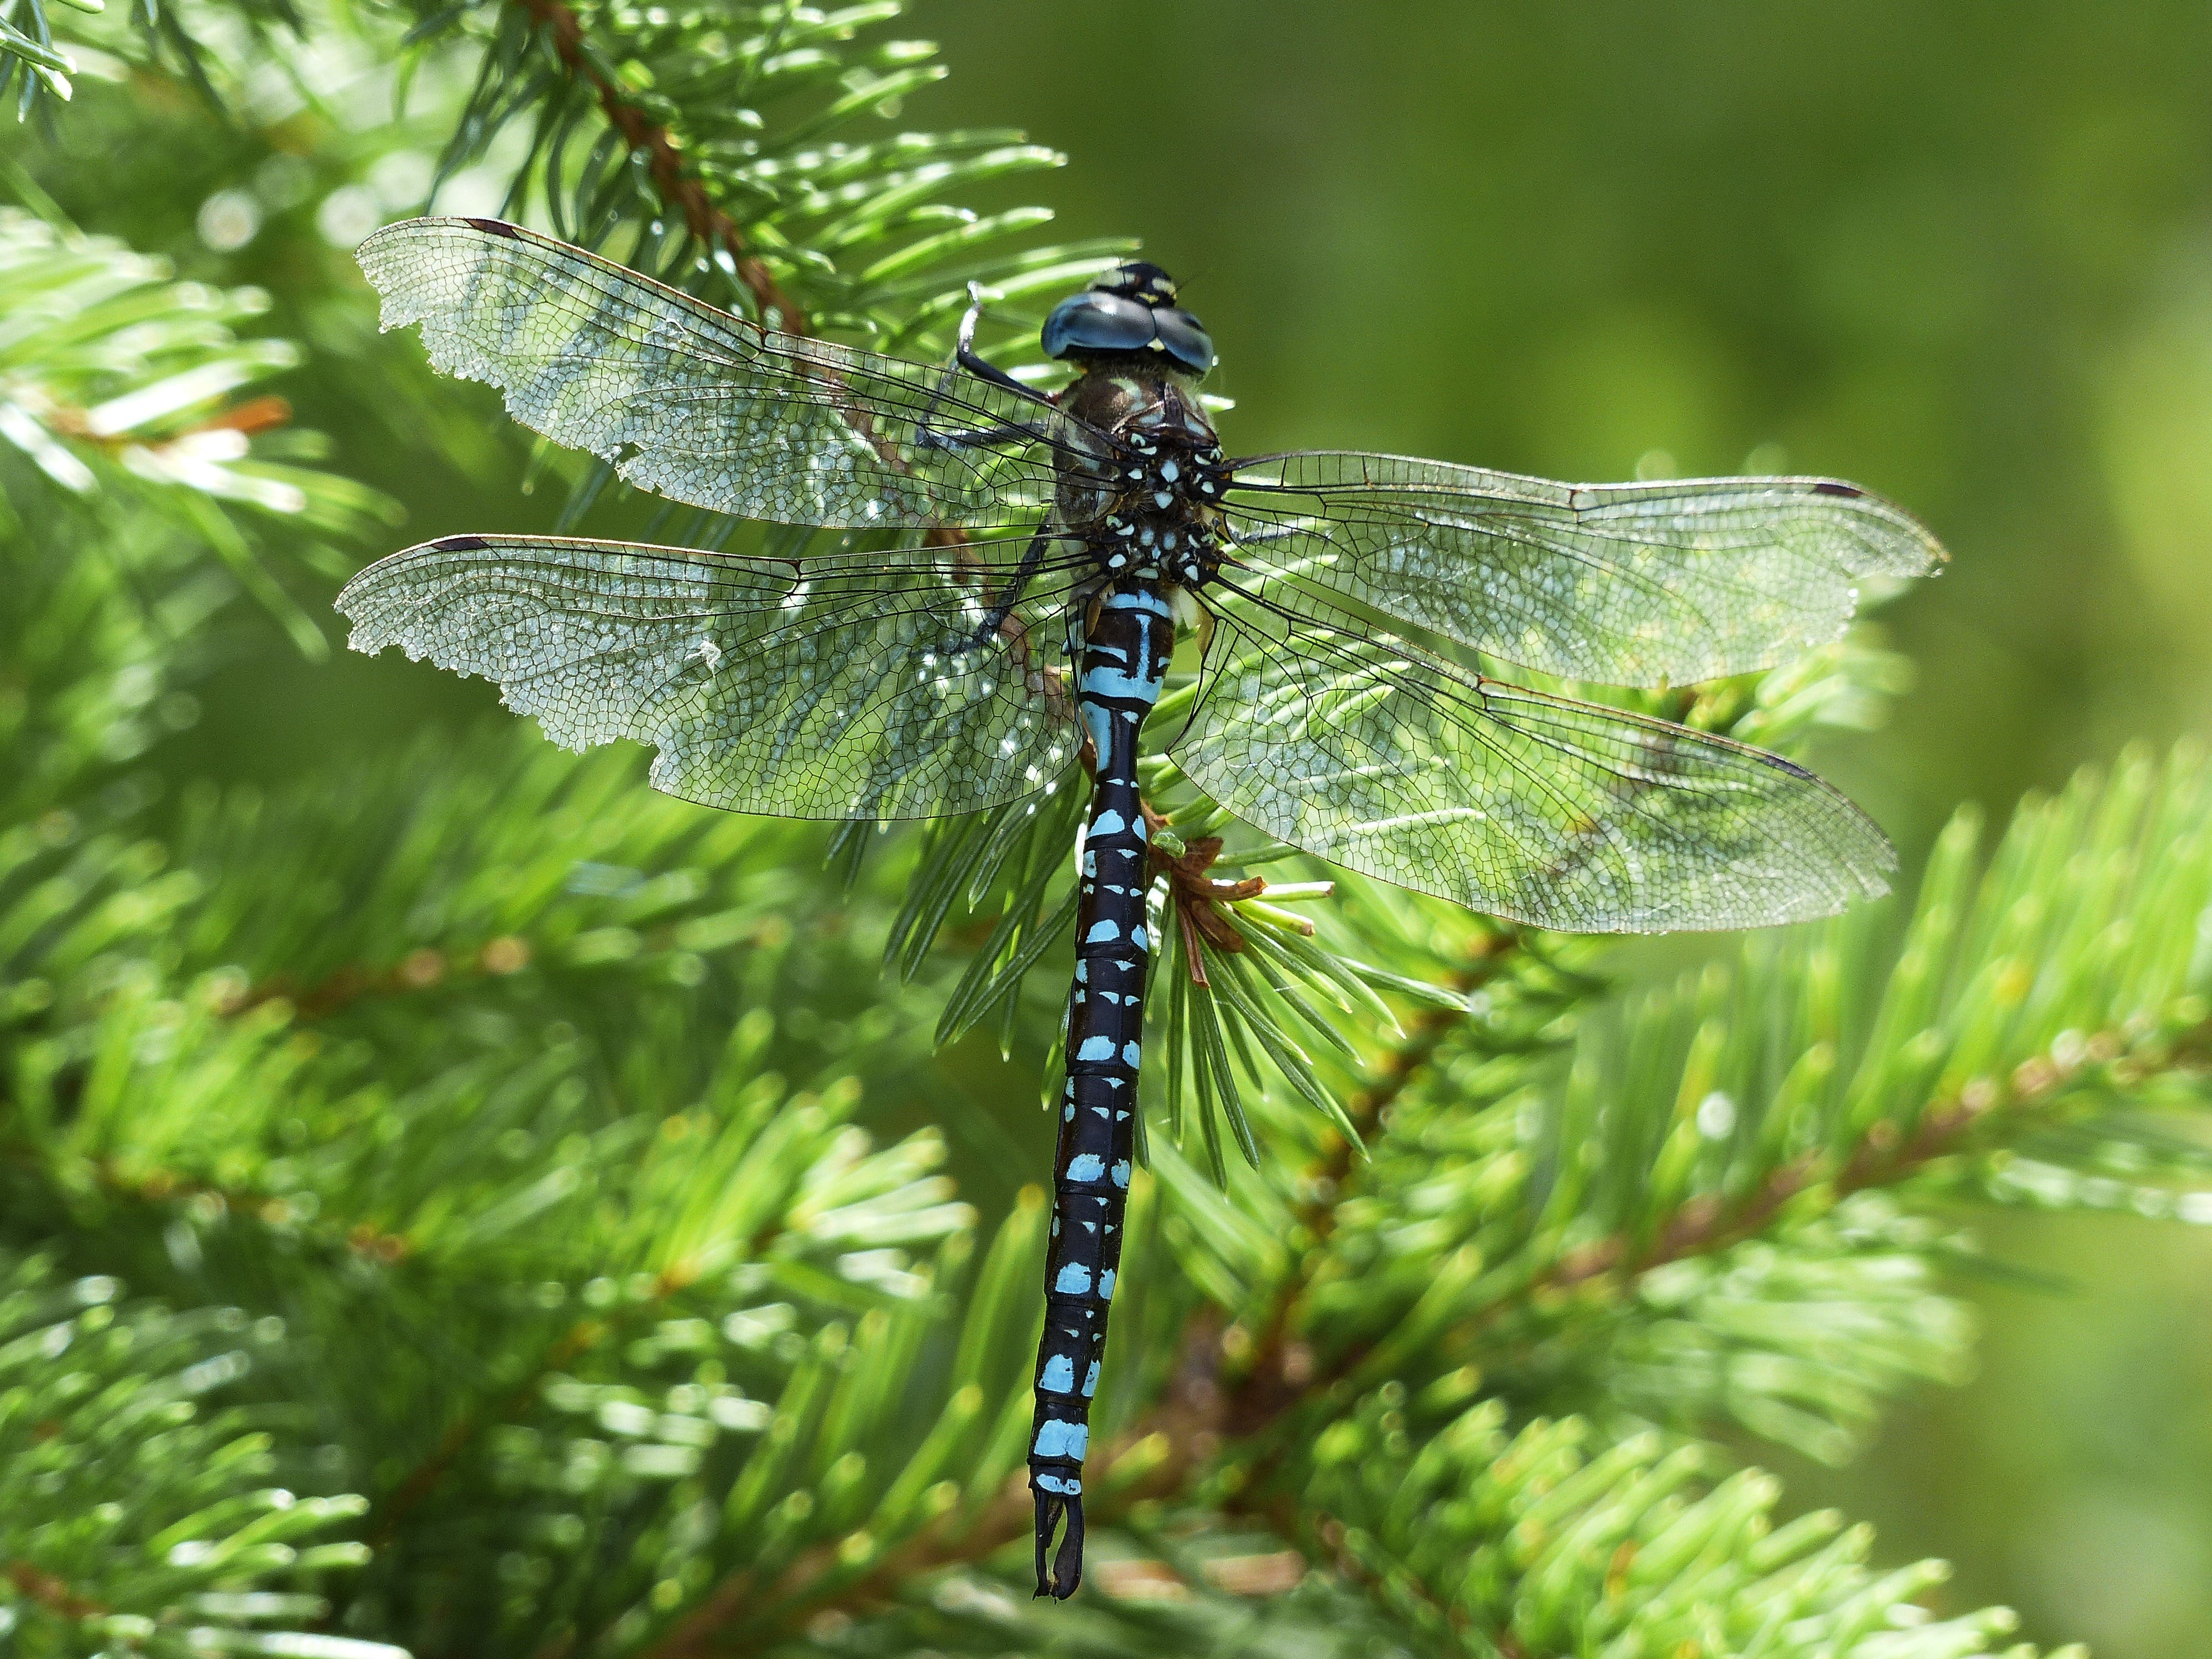 Black Blue and White Dragonfly